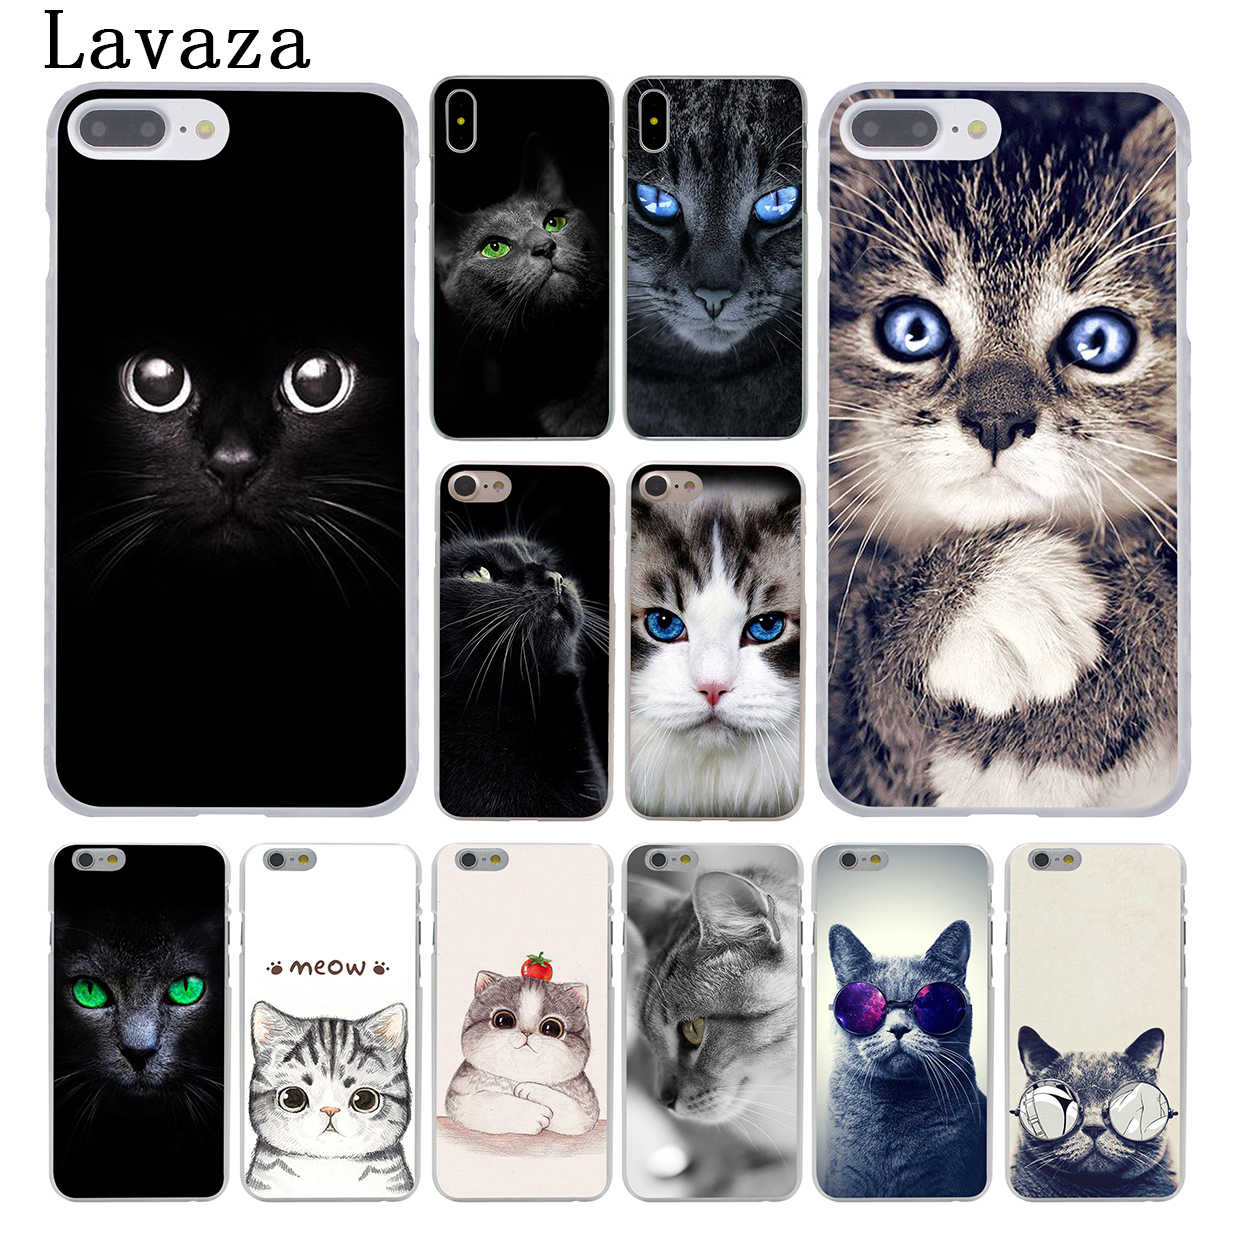 Lavaza kawaii Anime Black Cat Staring Eyes Hard Coque